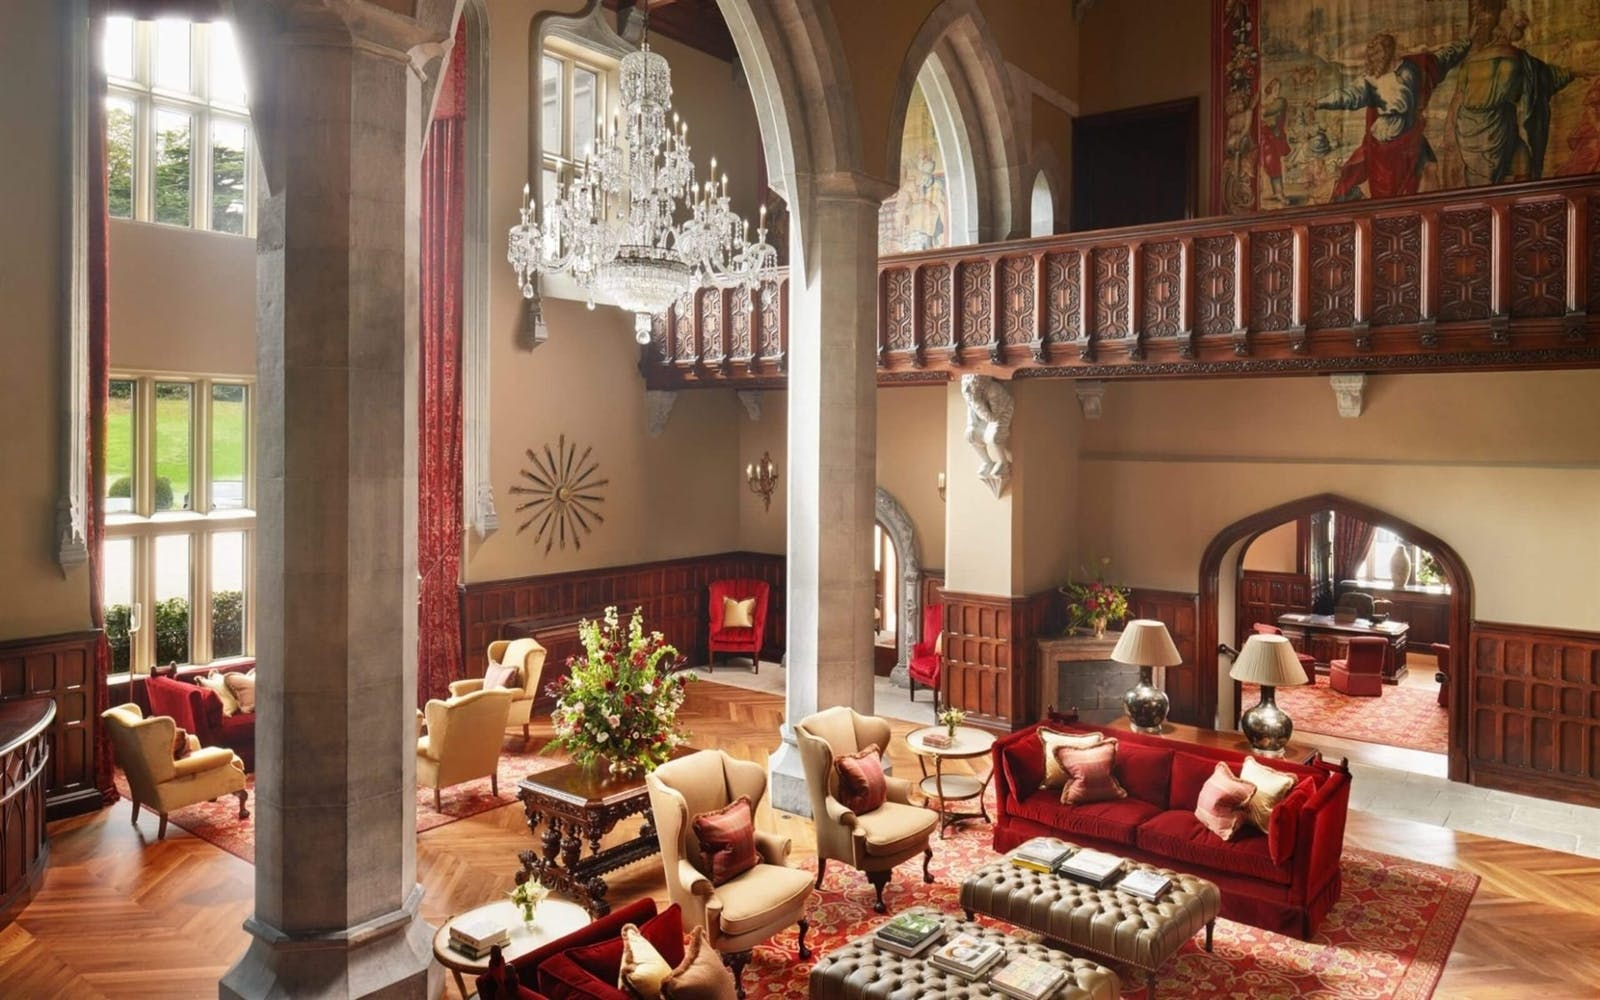 The Great Hall at Adare Manor, Ireland